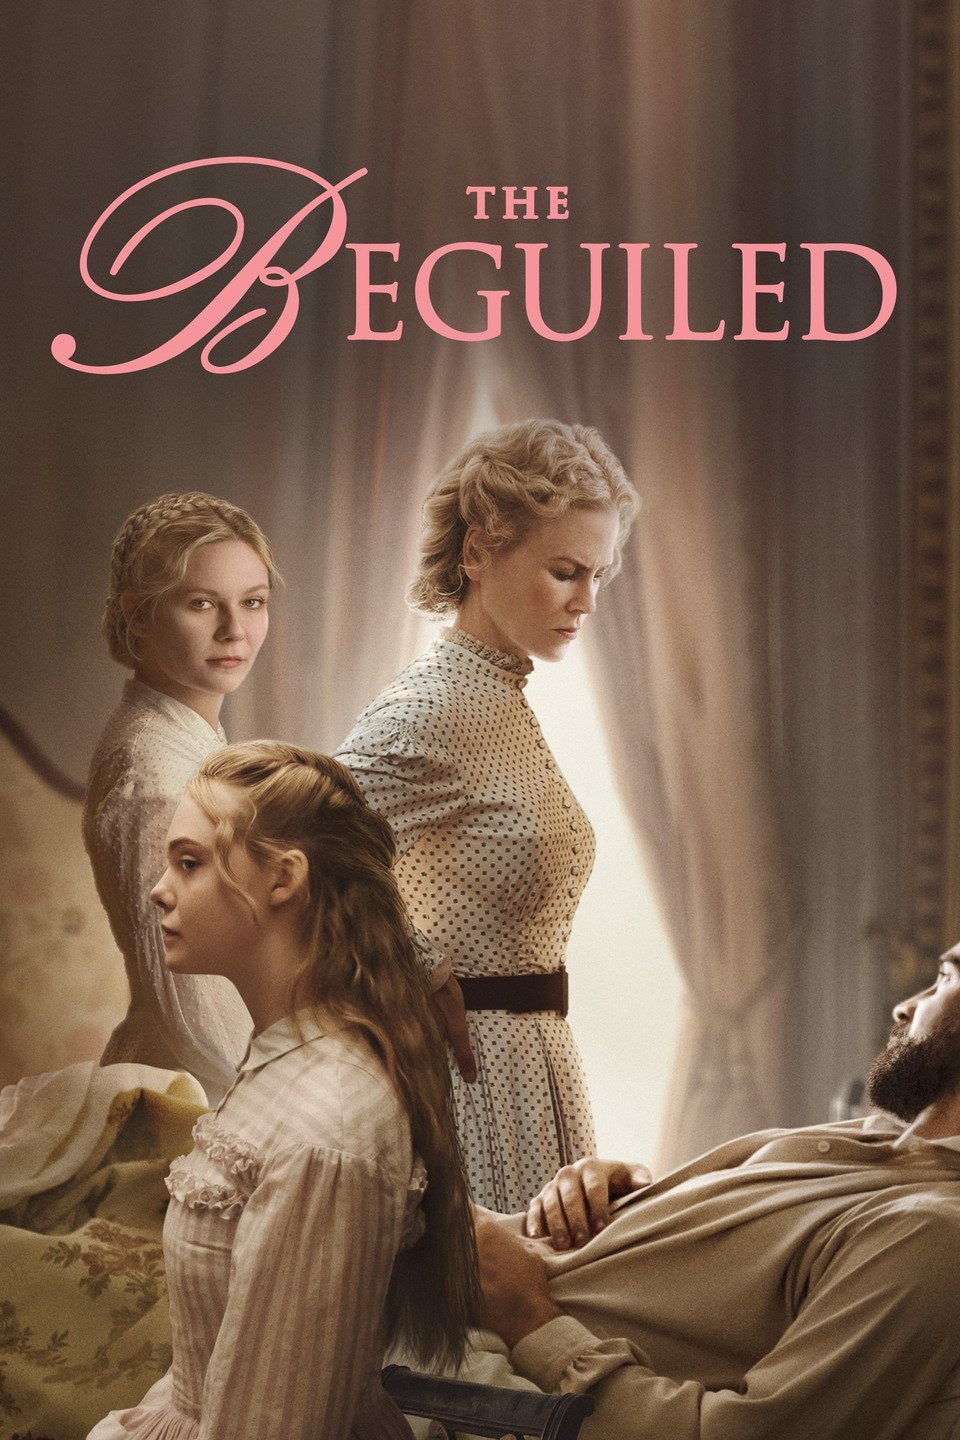 The Beguiled (2017) Vudu or Movies Anywhere HD redemption only